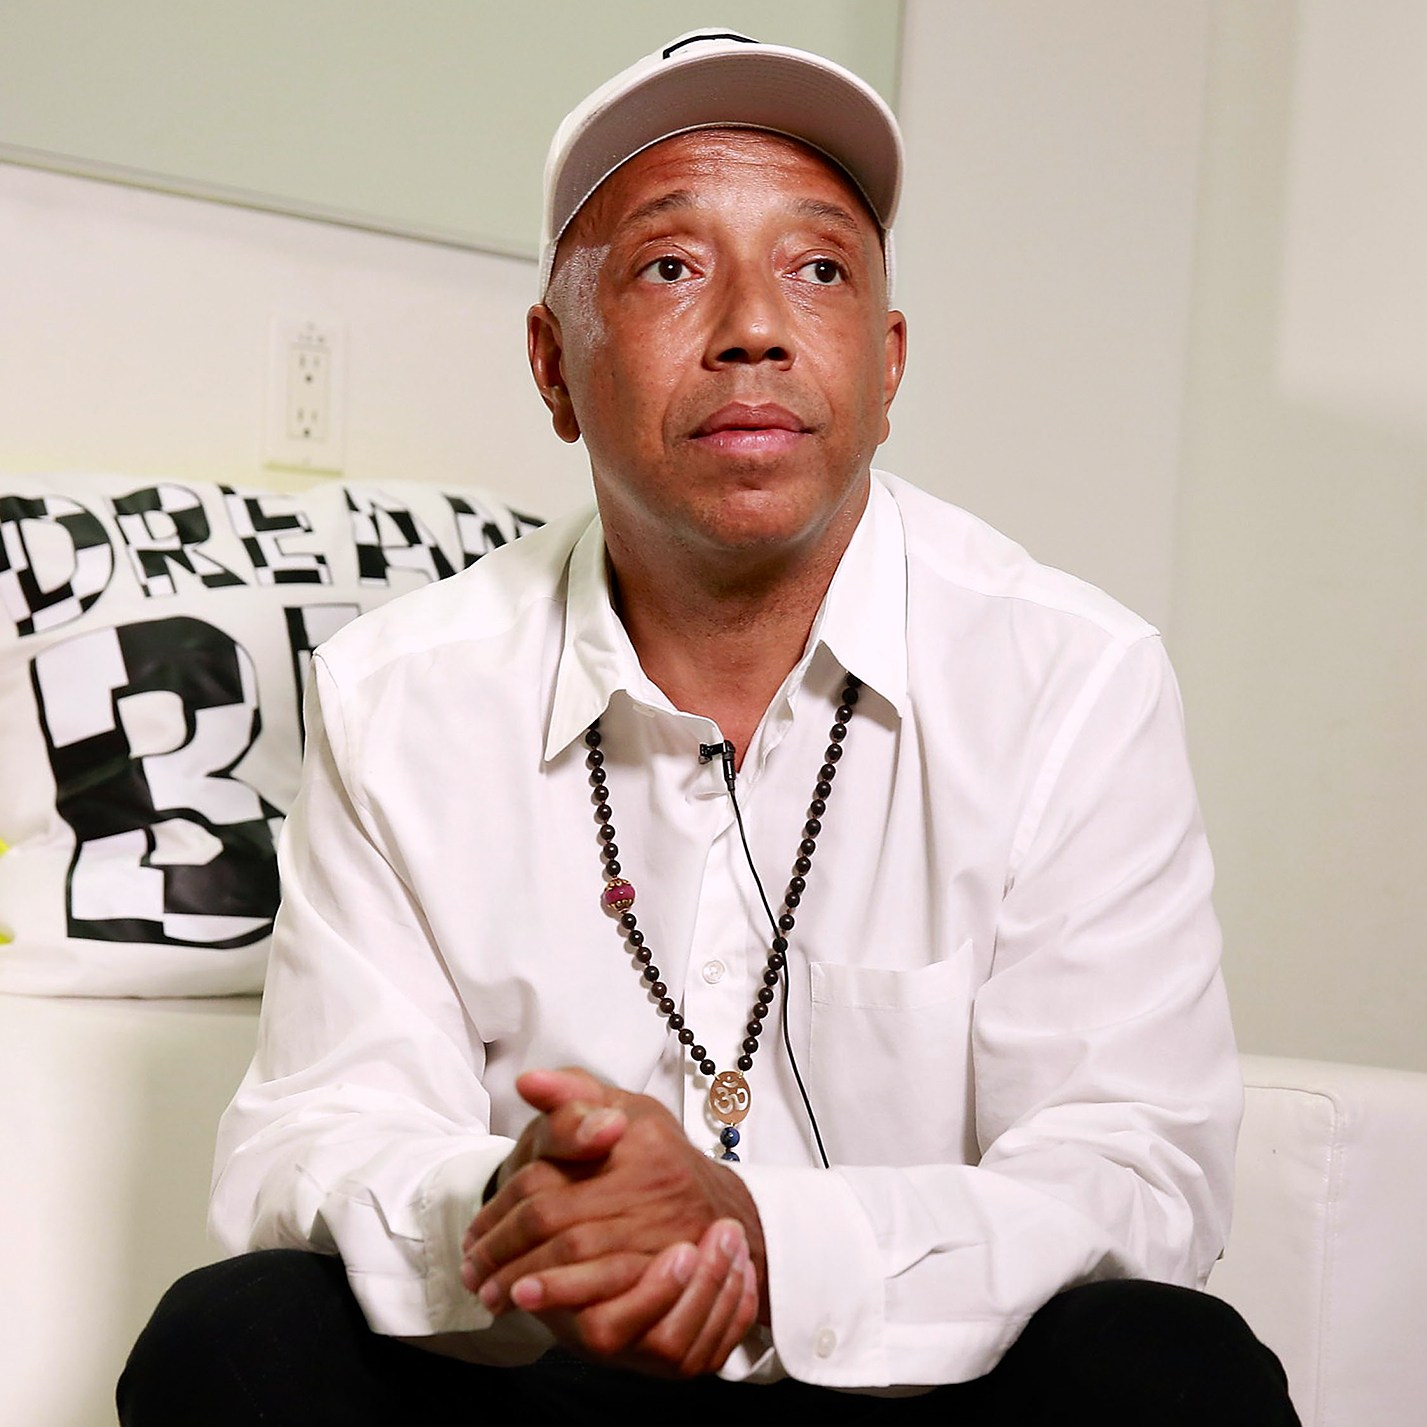 Russell Simmons Accused by Nine More Women of Sexual Assault